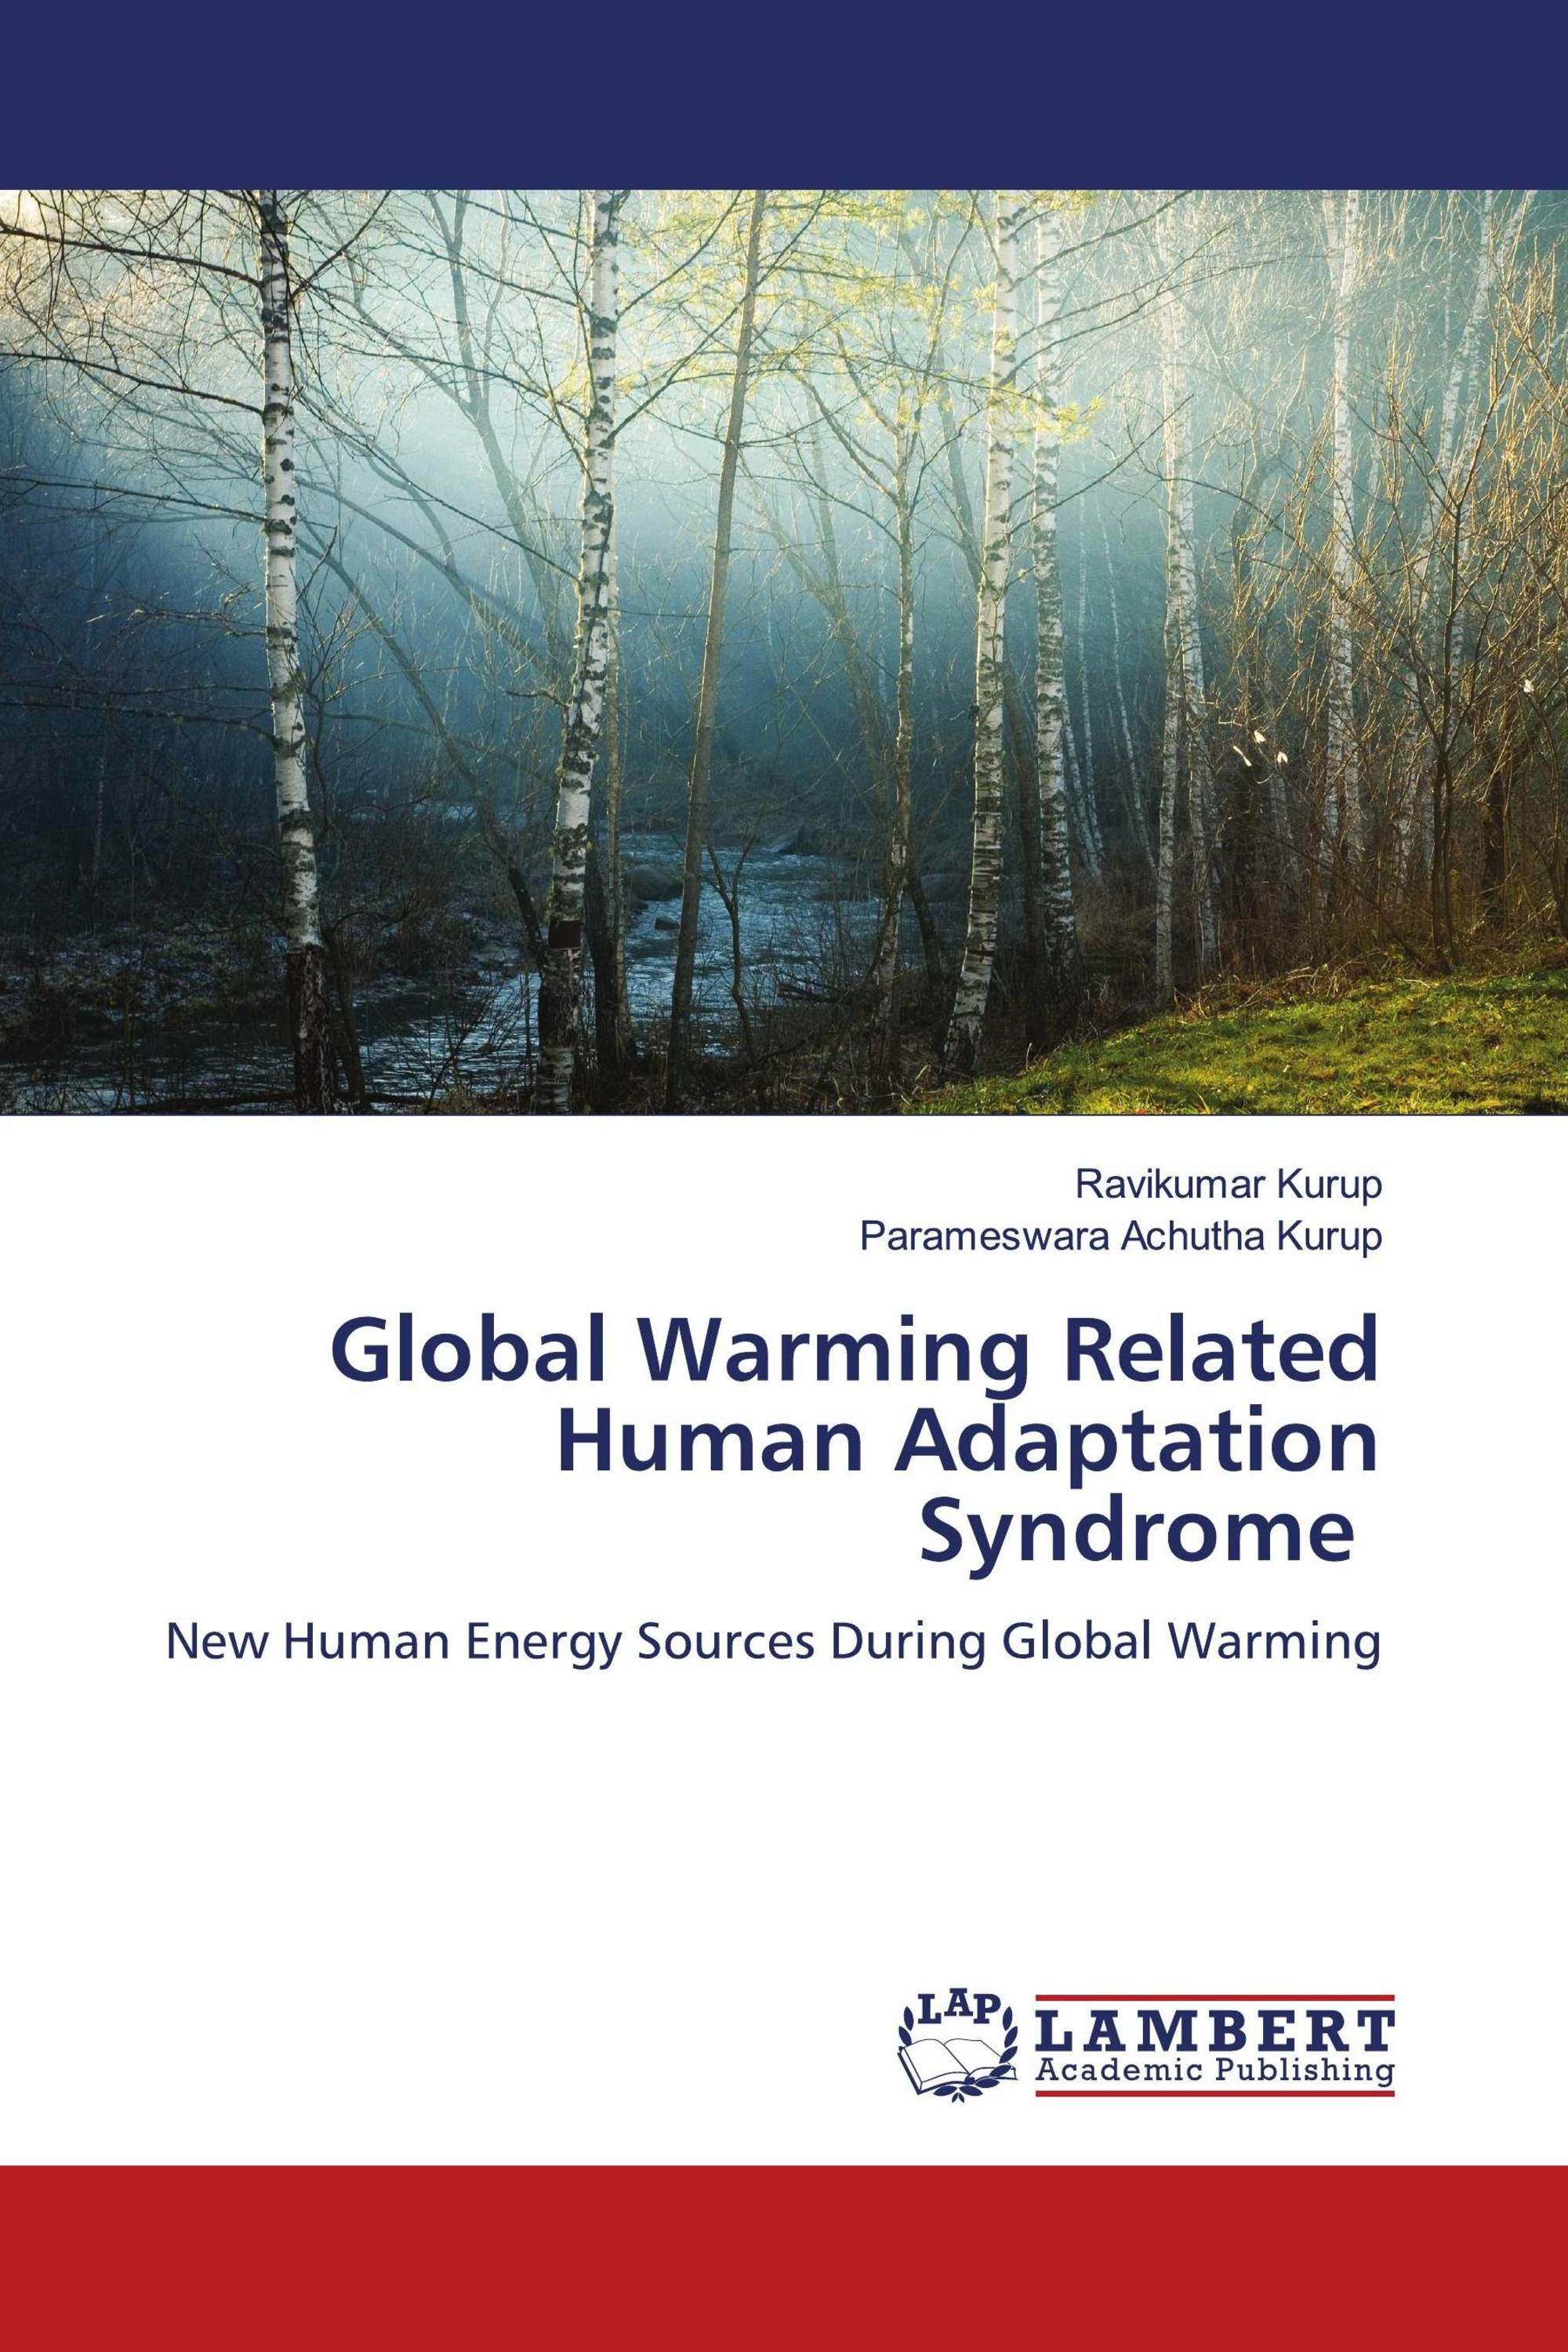 Global Warming Related Human Adaptation Syndrome